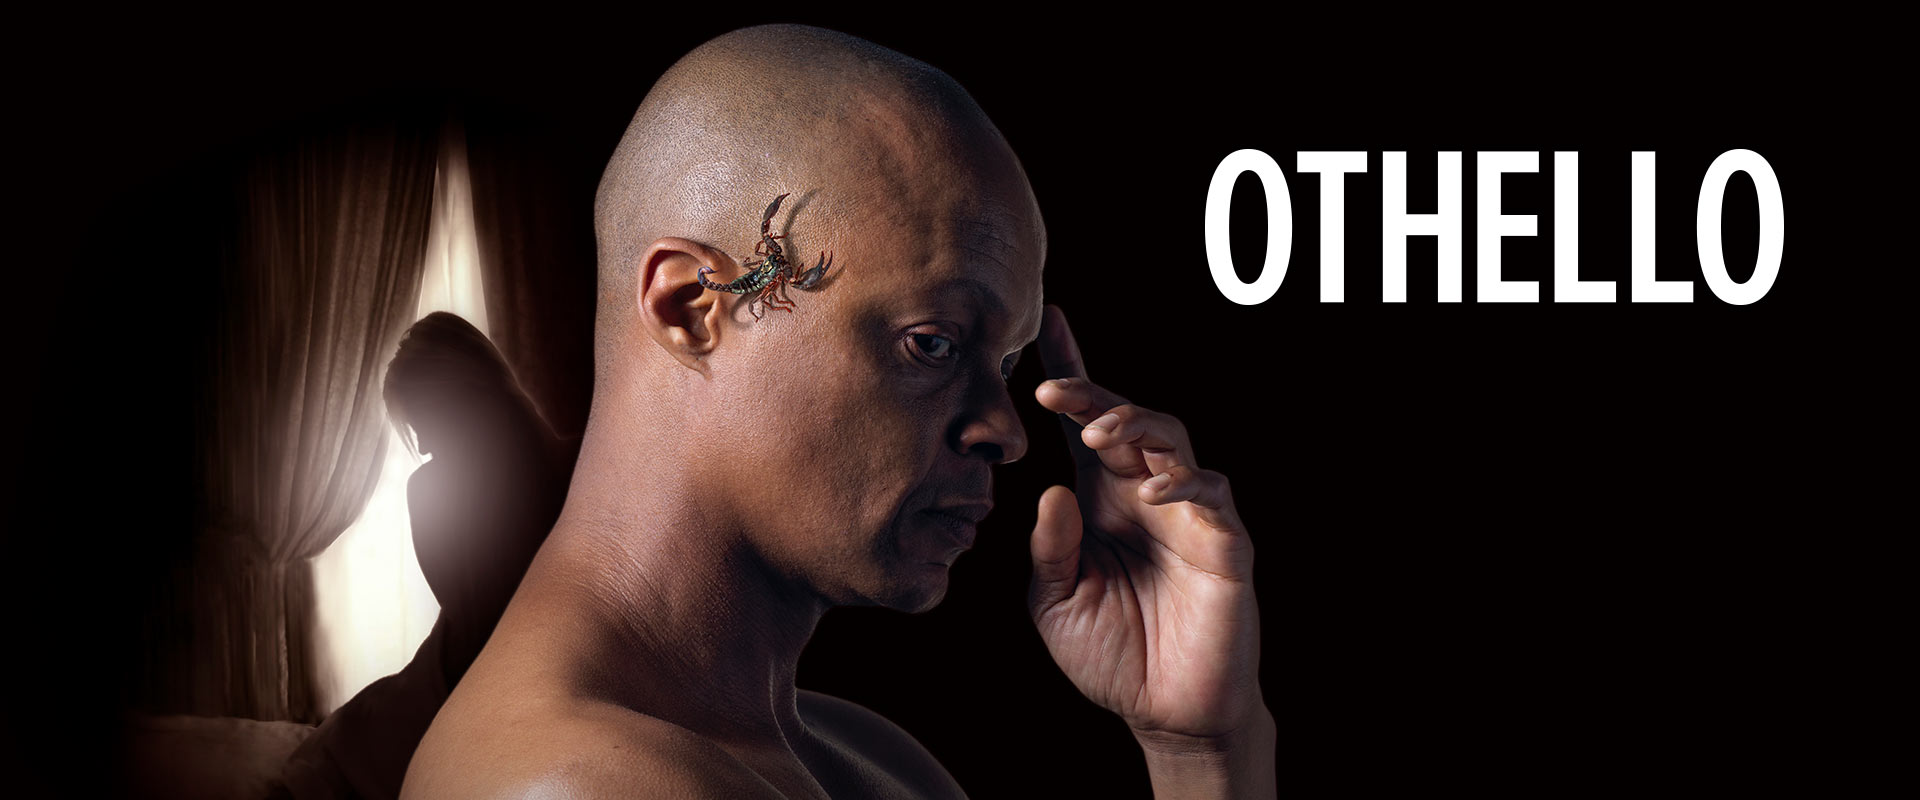 Publicity image from Othello